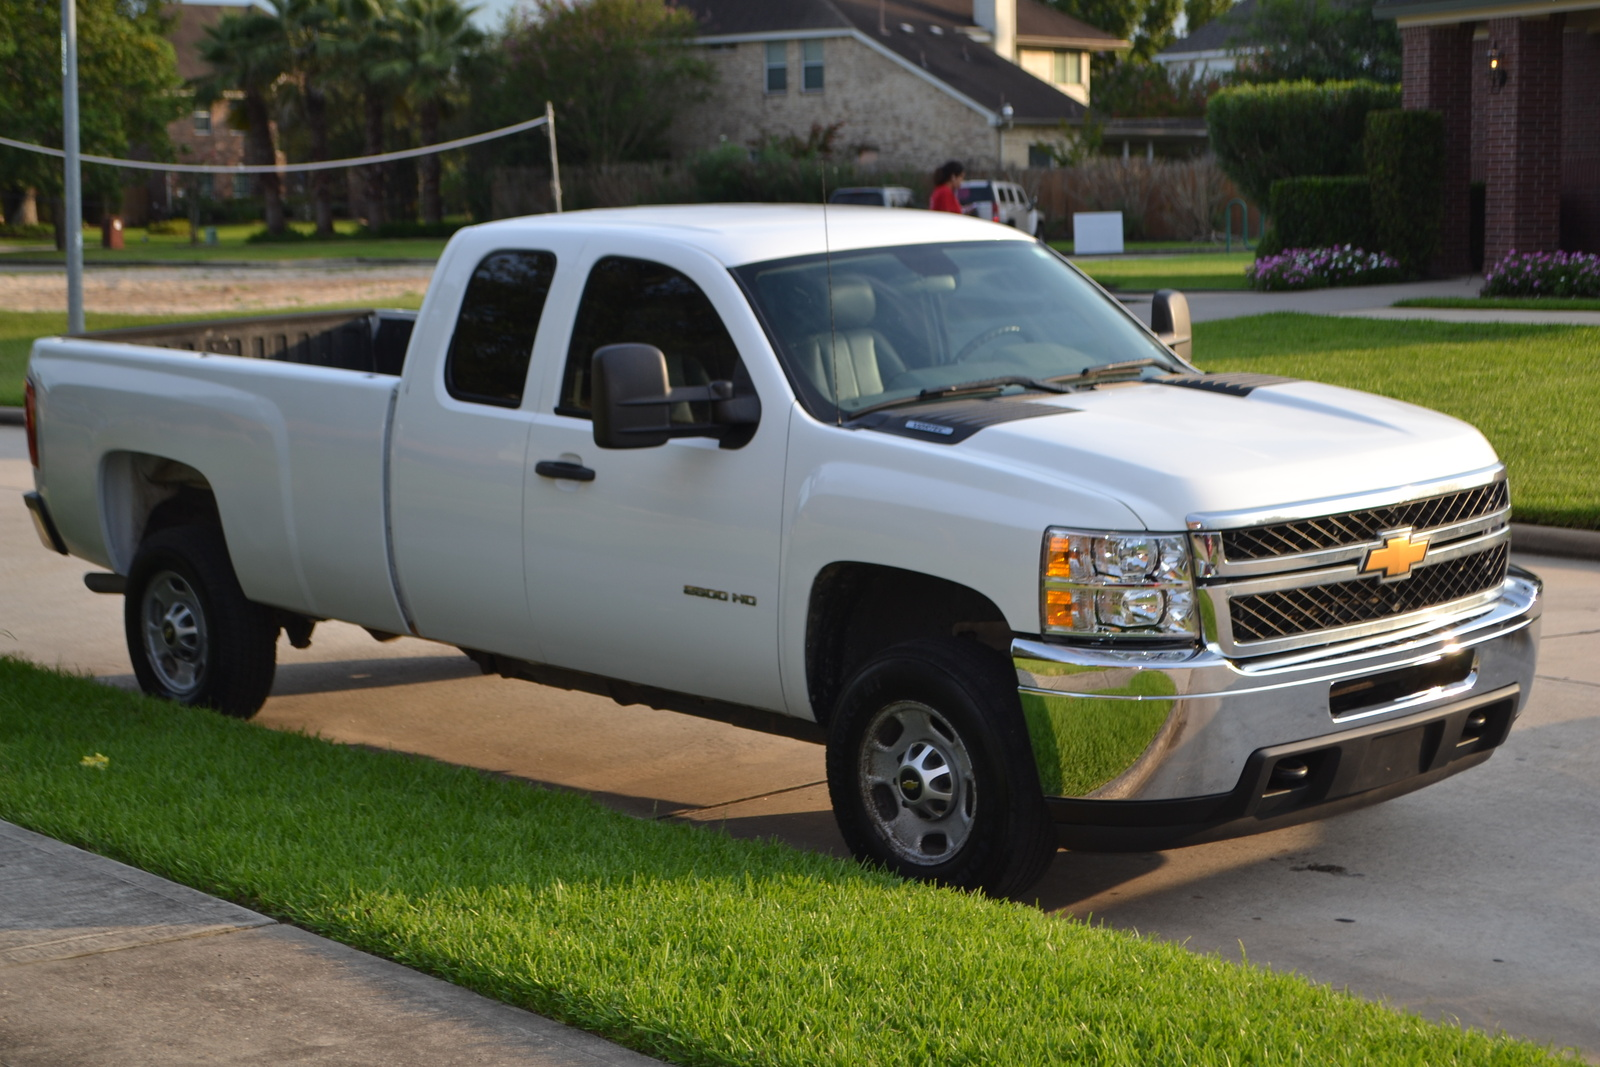 Used 2012 Chevrolet Silverado 2500hd For Sale In Houston Tx Cargurus 1976 Crew Cab 2011 Work Truck Extended Lb Rwd